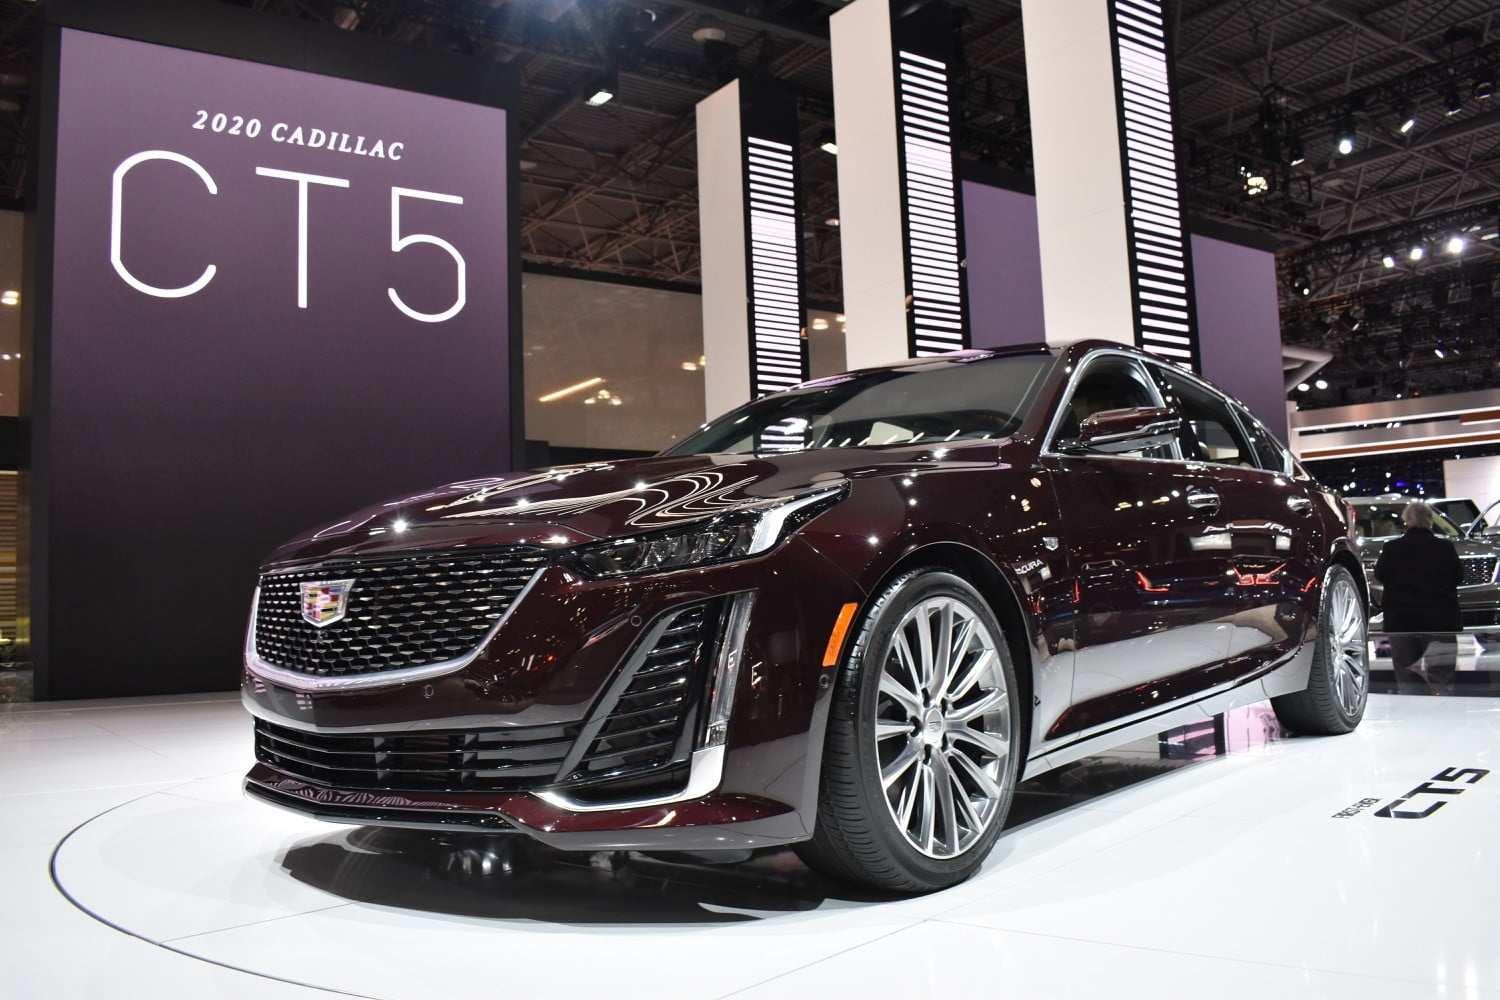 52 Best Cadillac Vehicles 2020 Picture